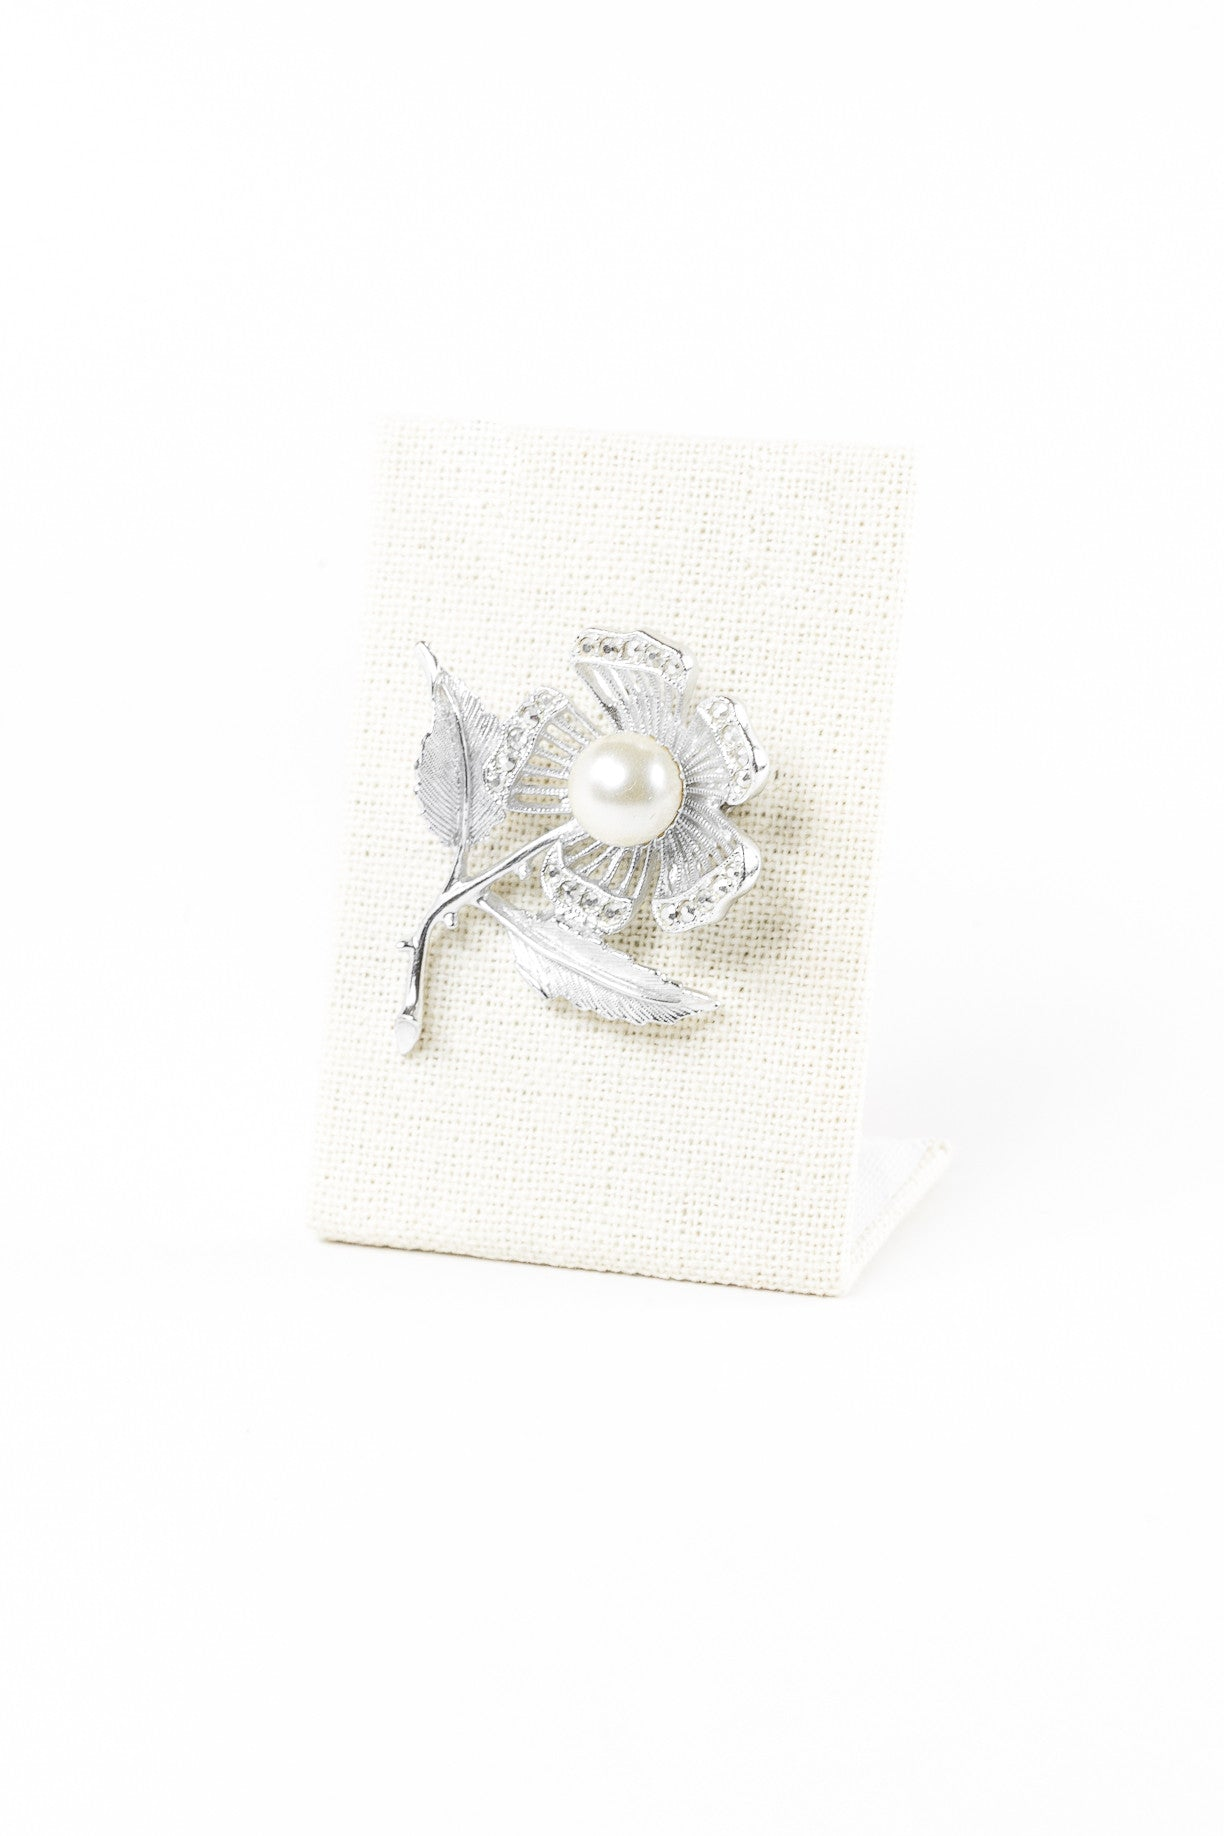 70's__Sarah Coventry__Silver Flower Pin